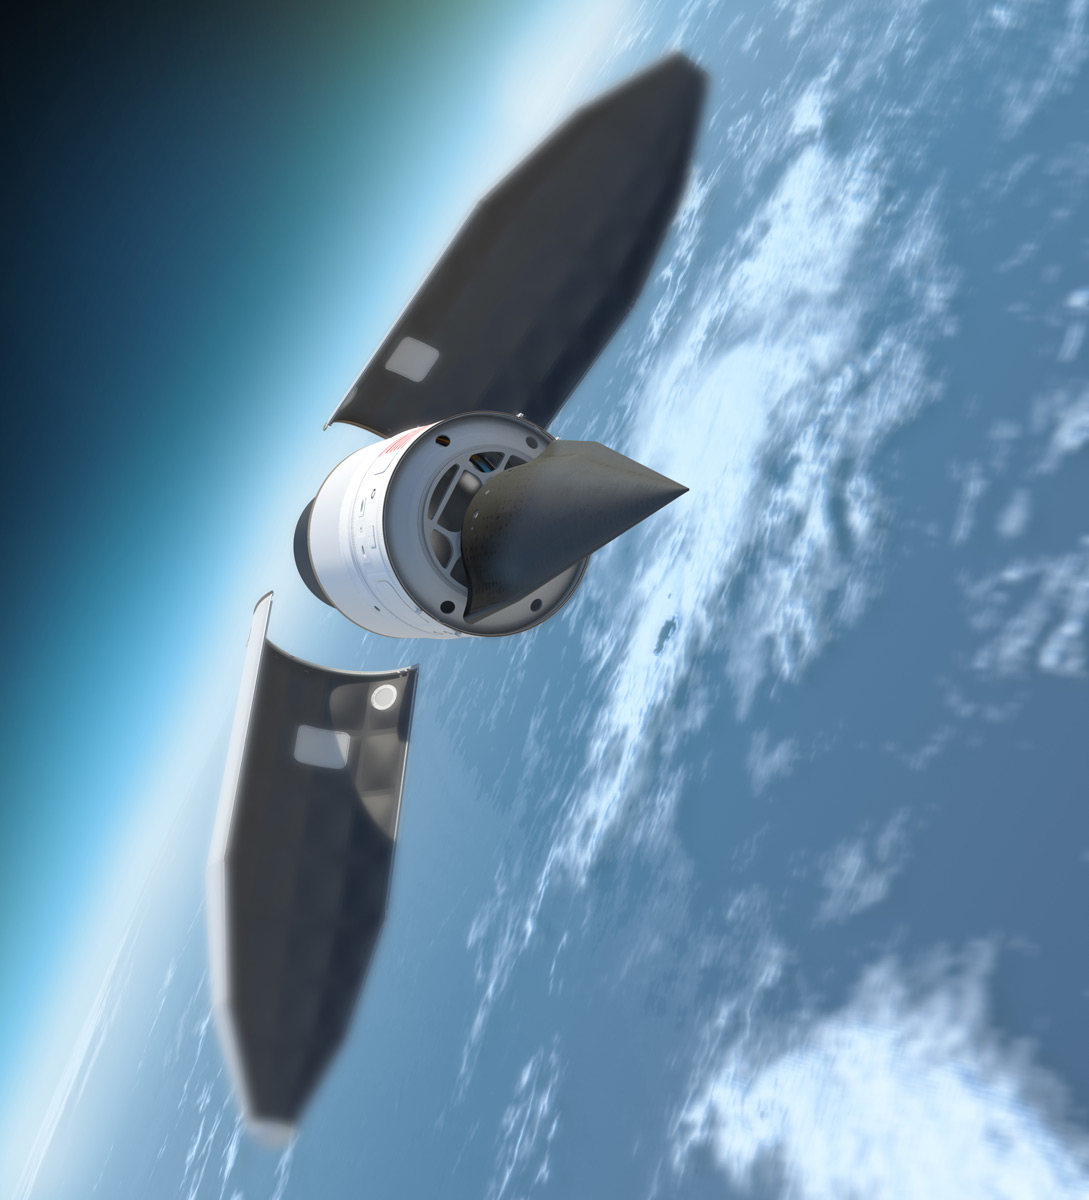 US Military Video Shows Hypersonic Aircraft Test Flight